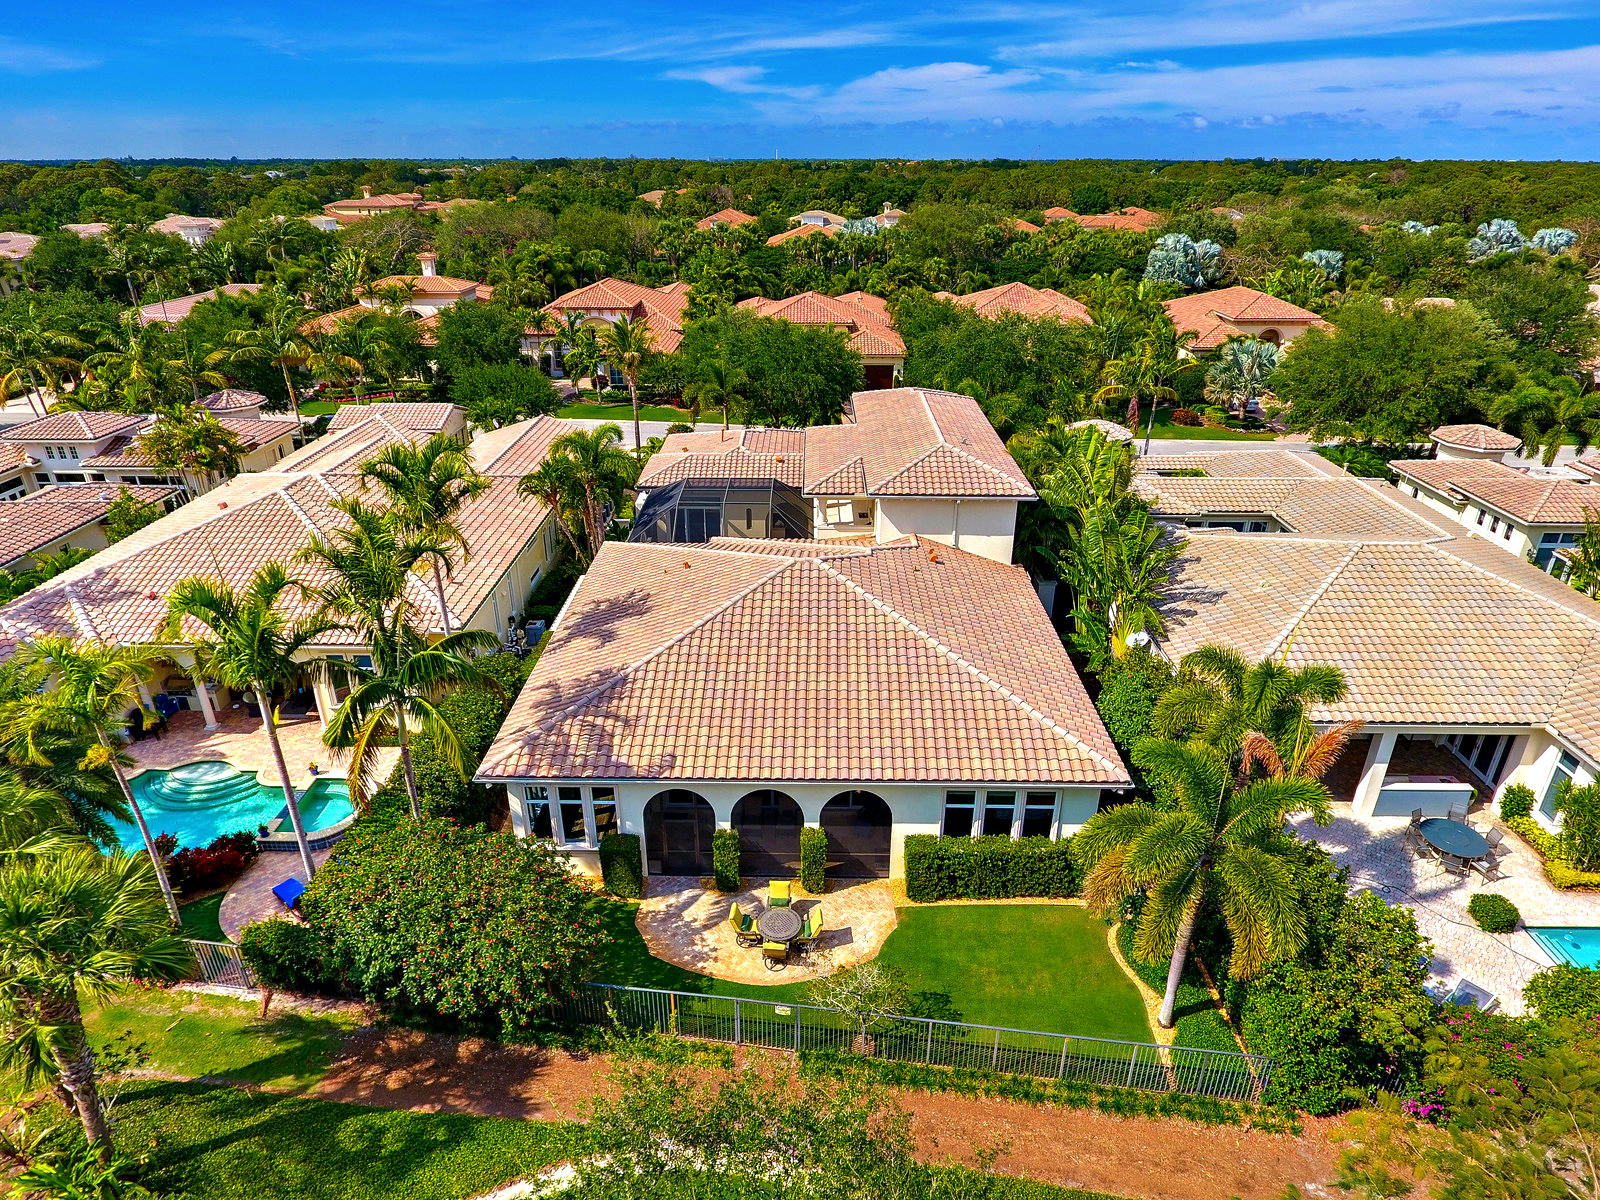 11308 Caladium Lane, Palm Beach Gardens, Florida 33418, 5 Bedrooms Bedrooms, ,5.1 BathroomsBathrooms,F,Single family,Caladium,RX-10494180